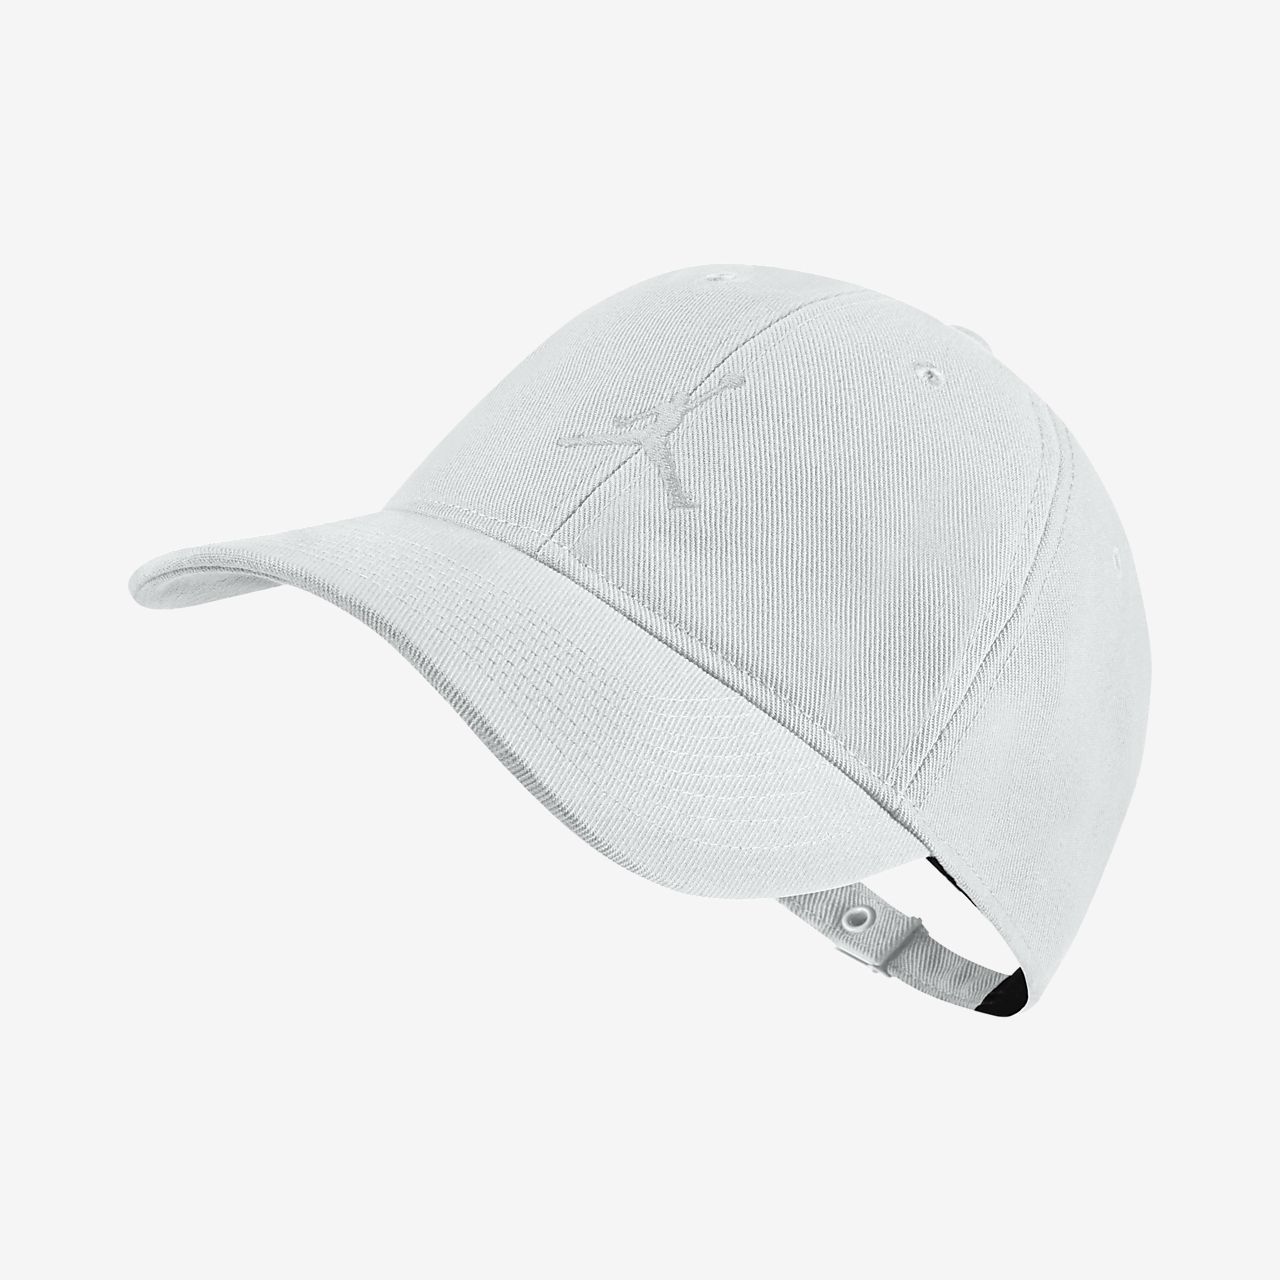 360f3485fc7 Jordan Jumpman H86 Adjustable Hat. Nike.com MY